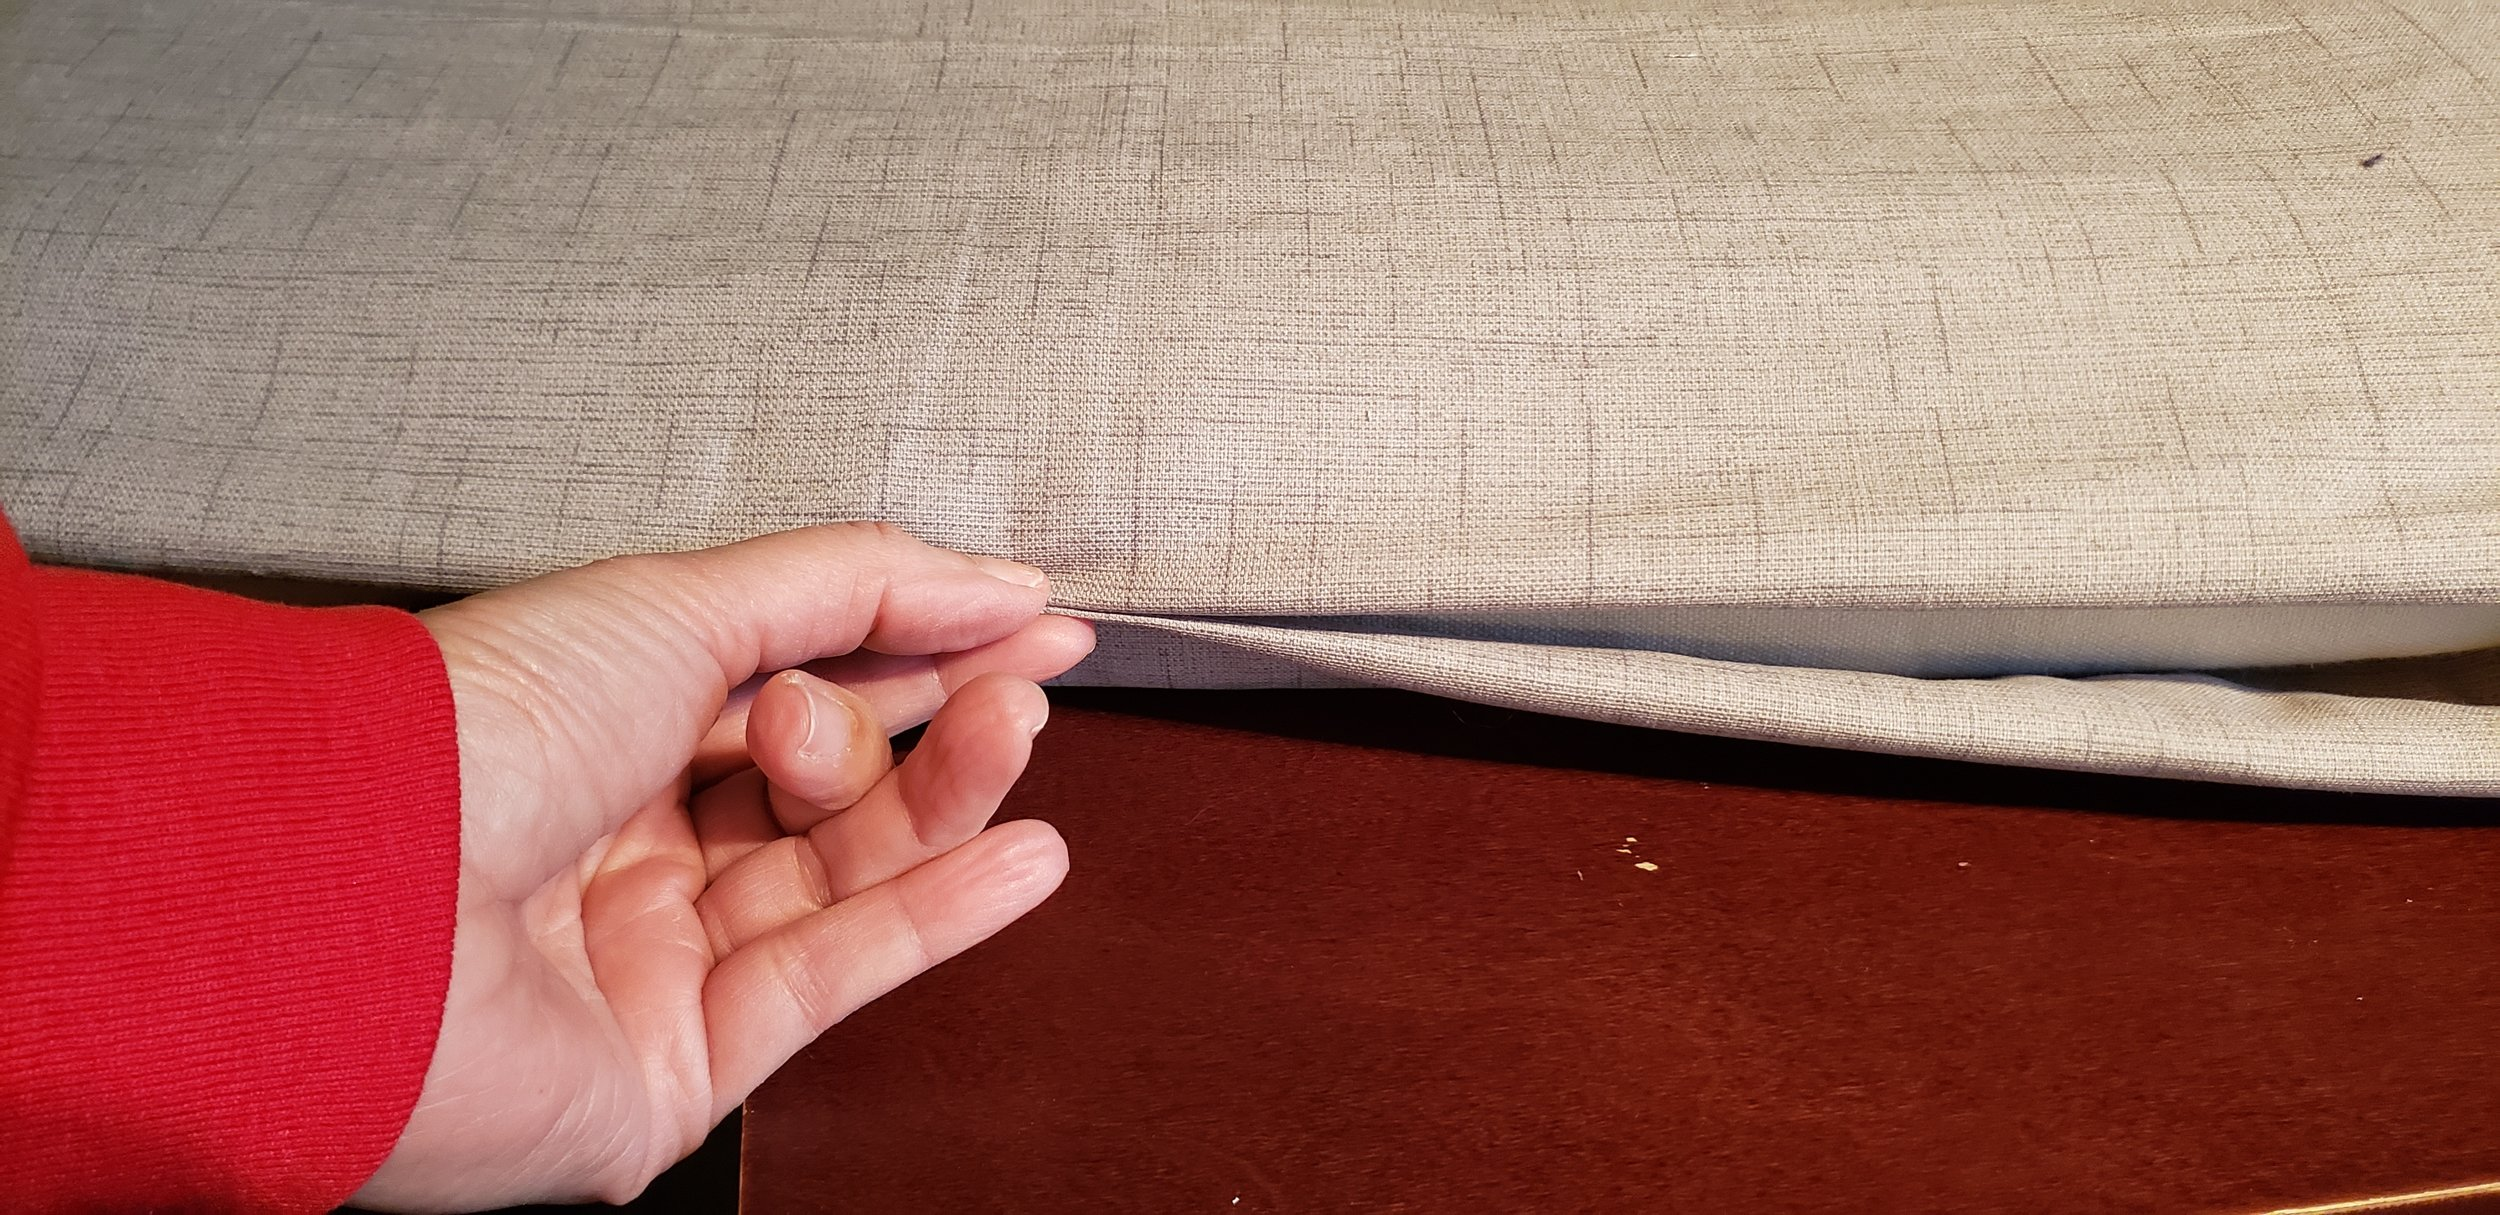 - I started by tucking under the fabric to create a hem and leaving only enough room for a zipper to close (using a pinch of my fingers as my guide for how much room to leave). My thumb is touching the end of the cushion that is inside.